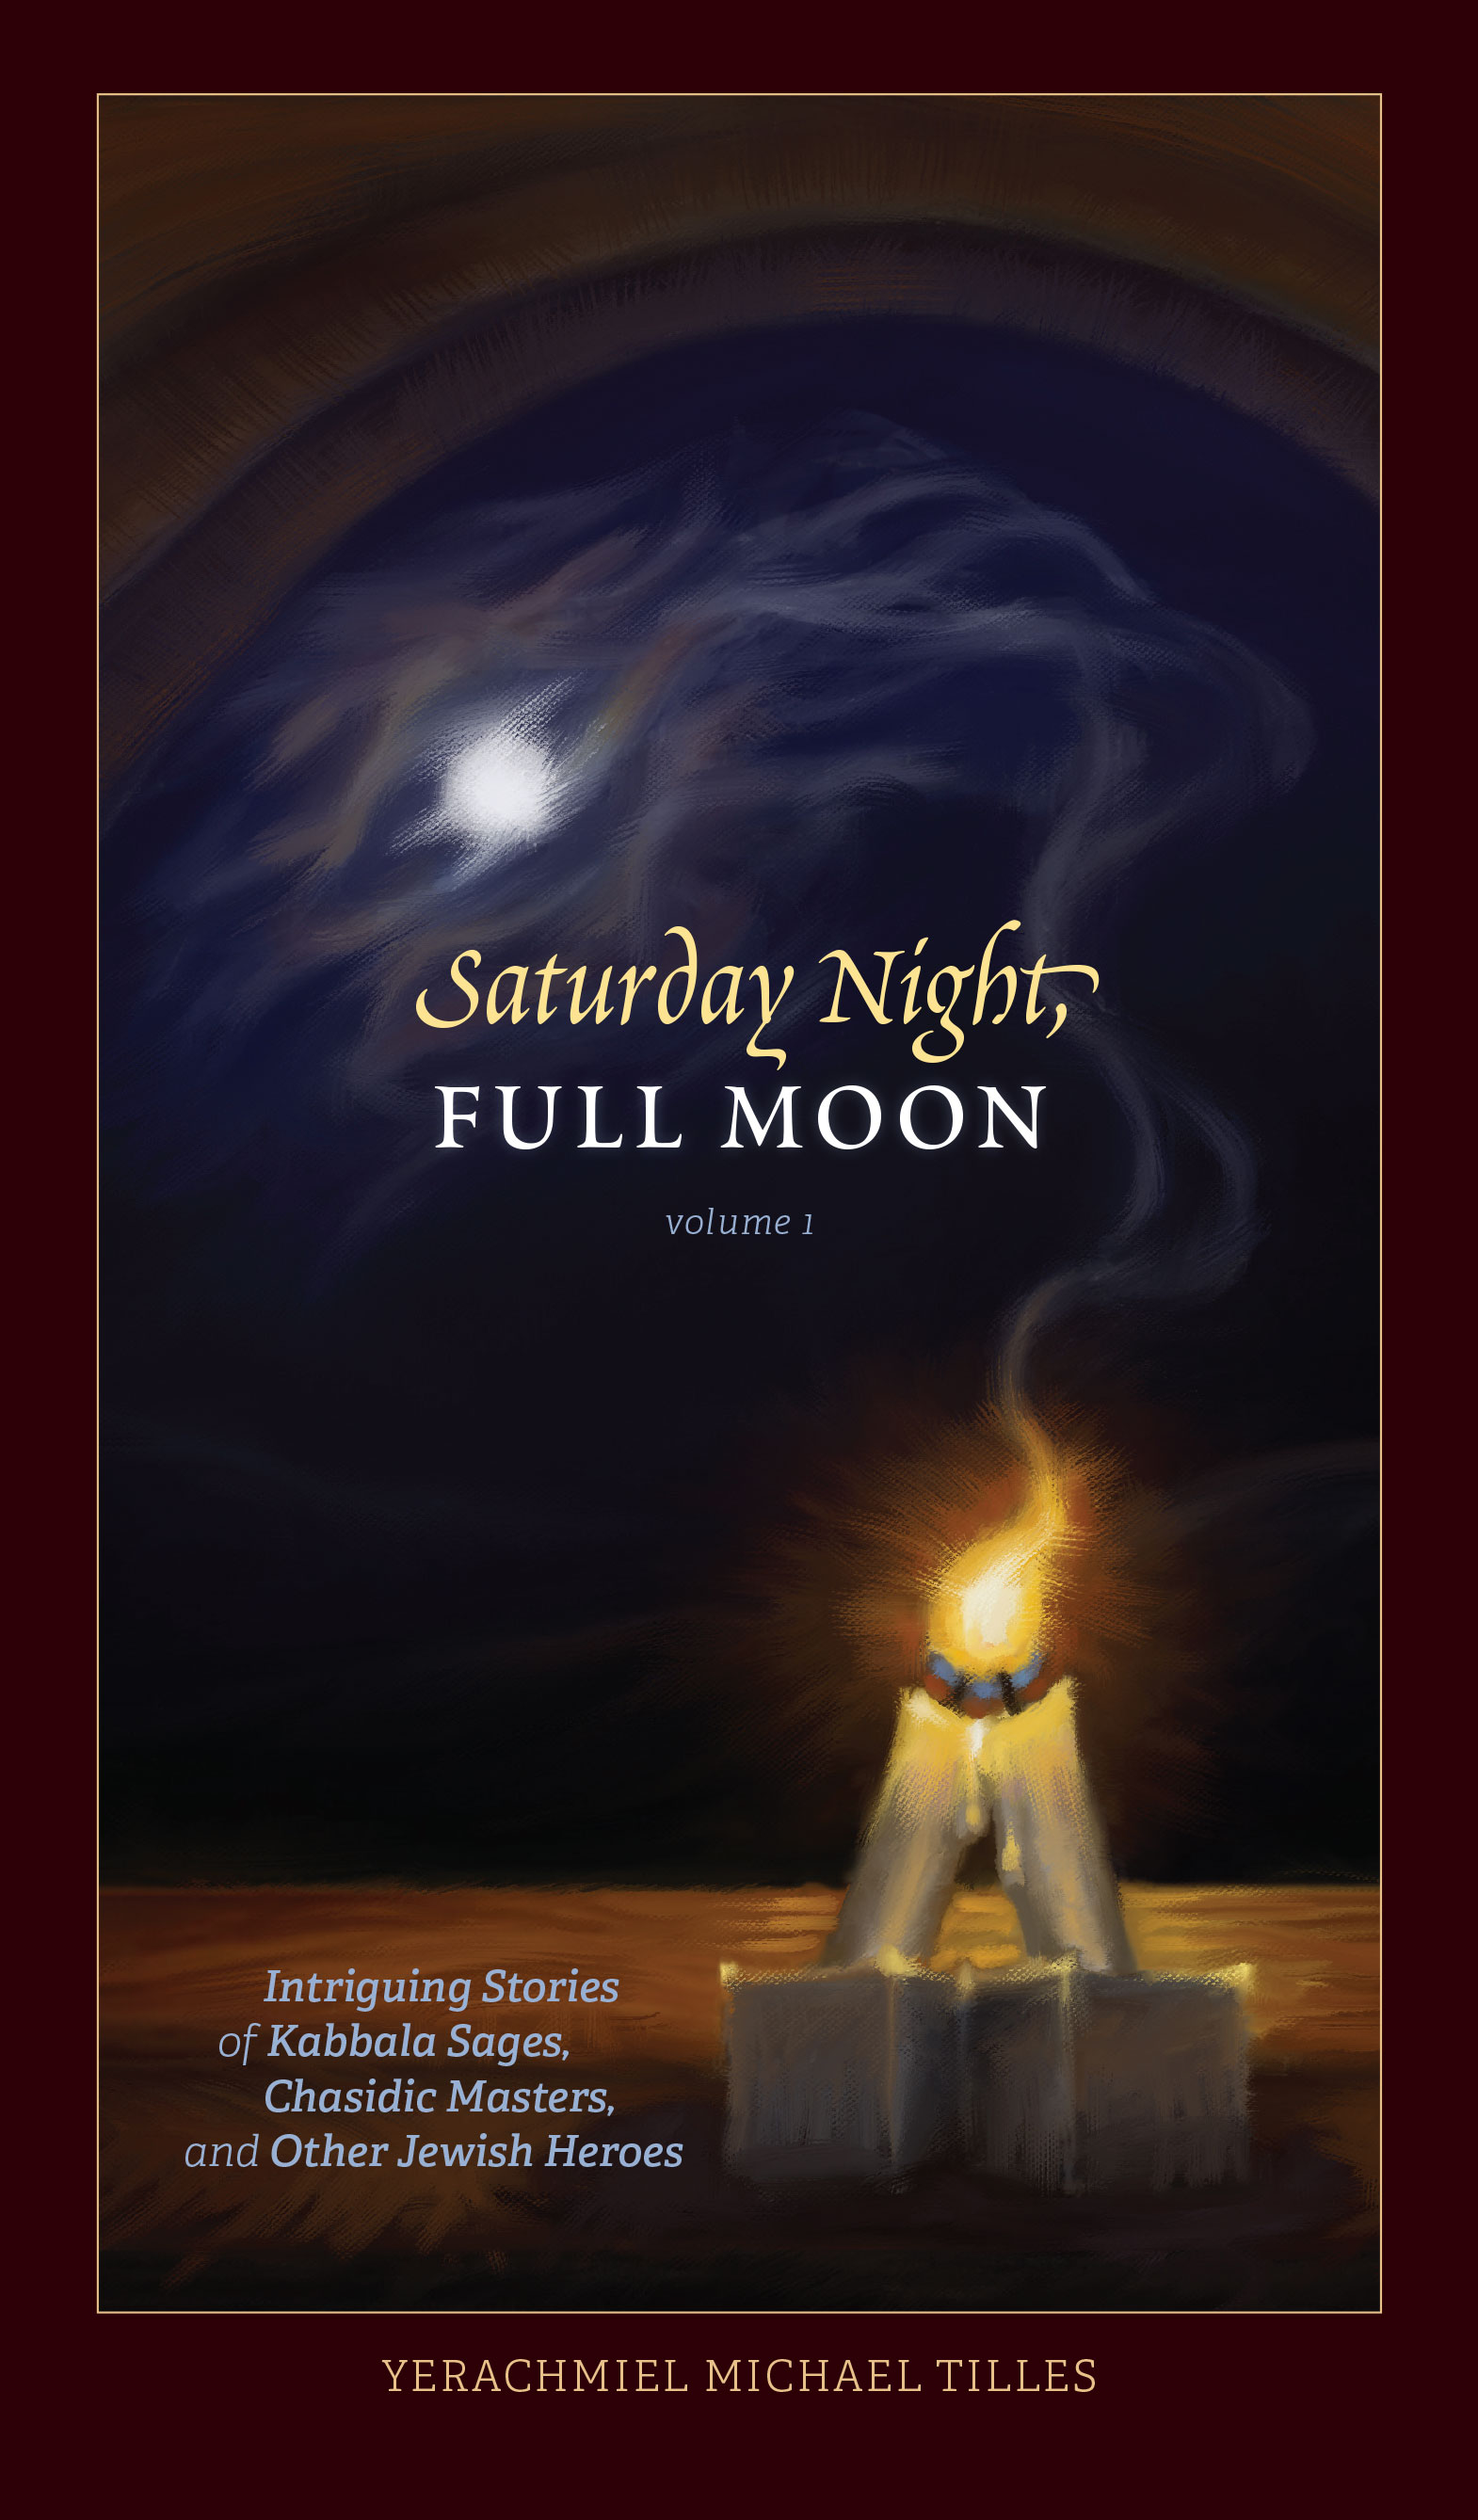 Saturday-Night-Full-Moon-cover-optimized-for-web.jpg